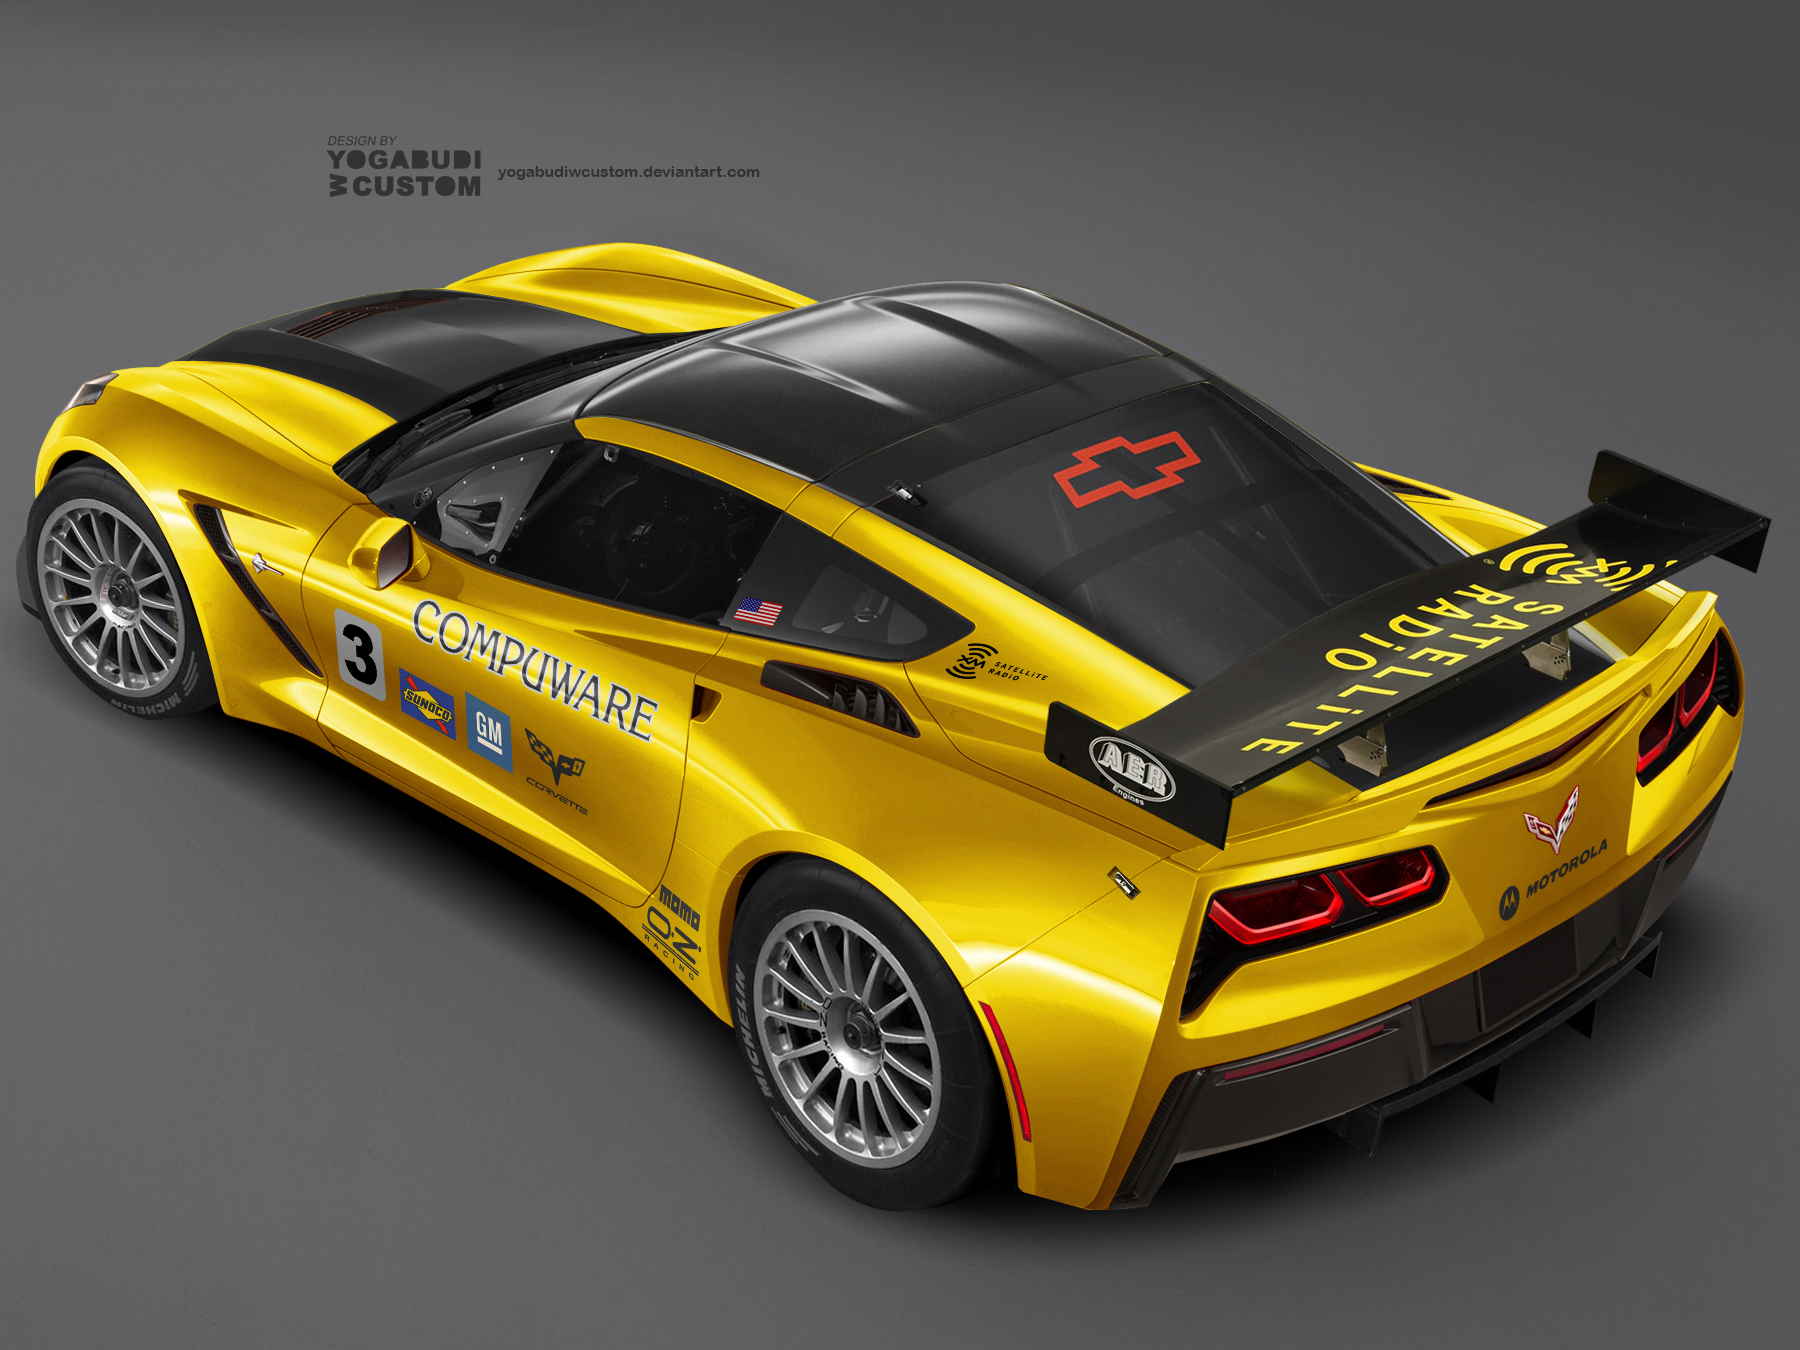 Corvette Stingray C7.R by YogaBudiwCUSTOM